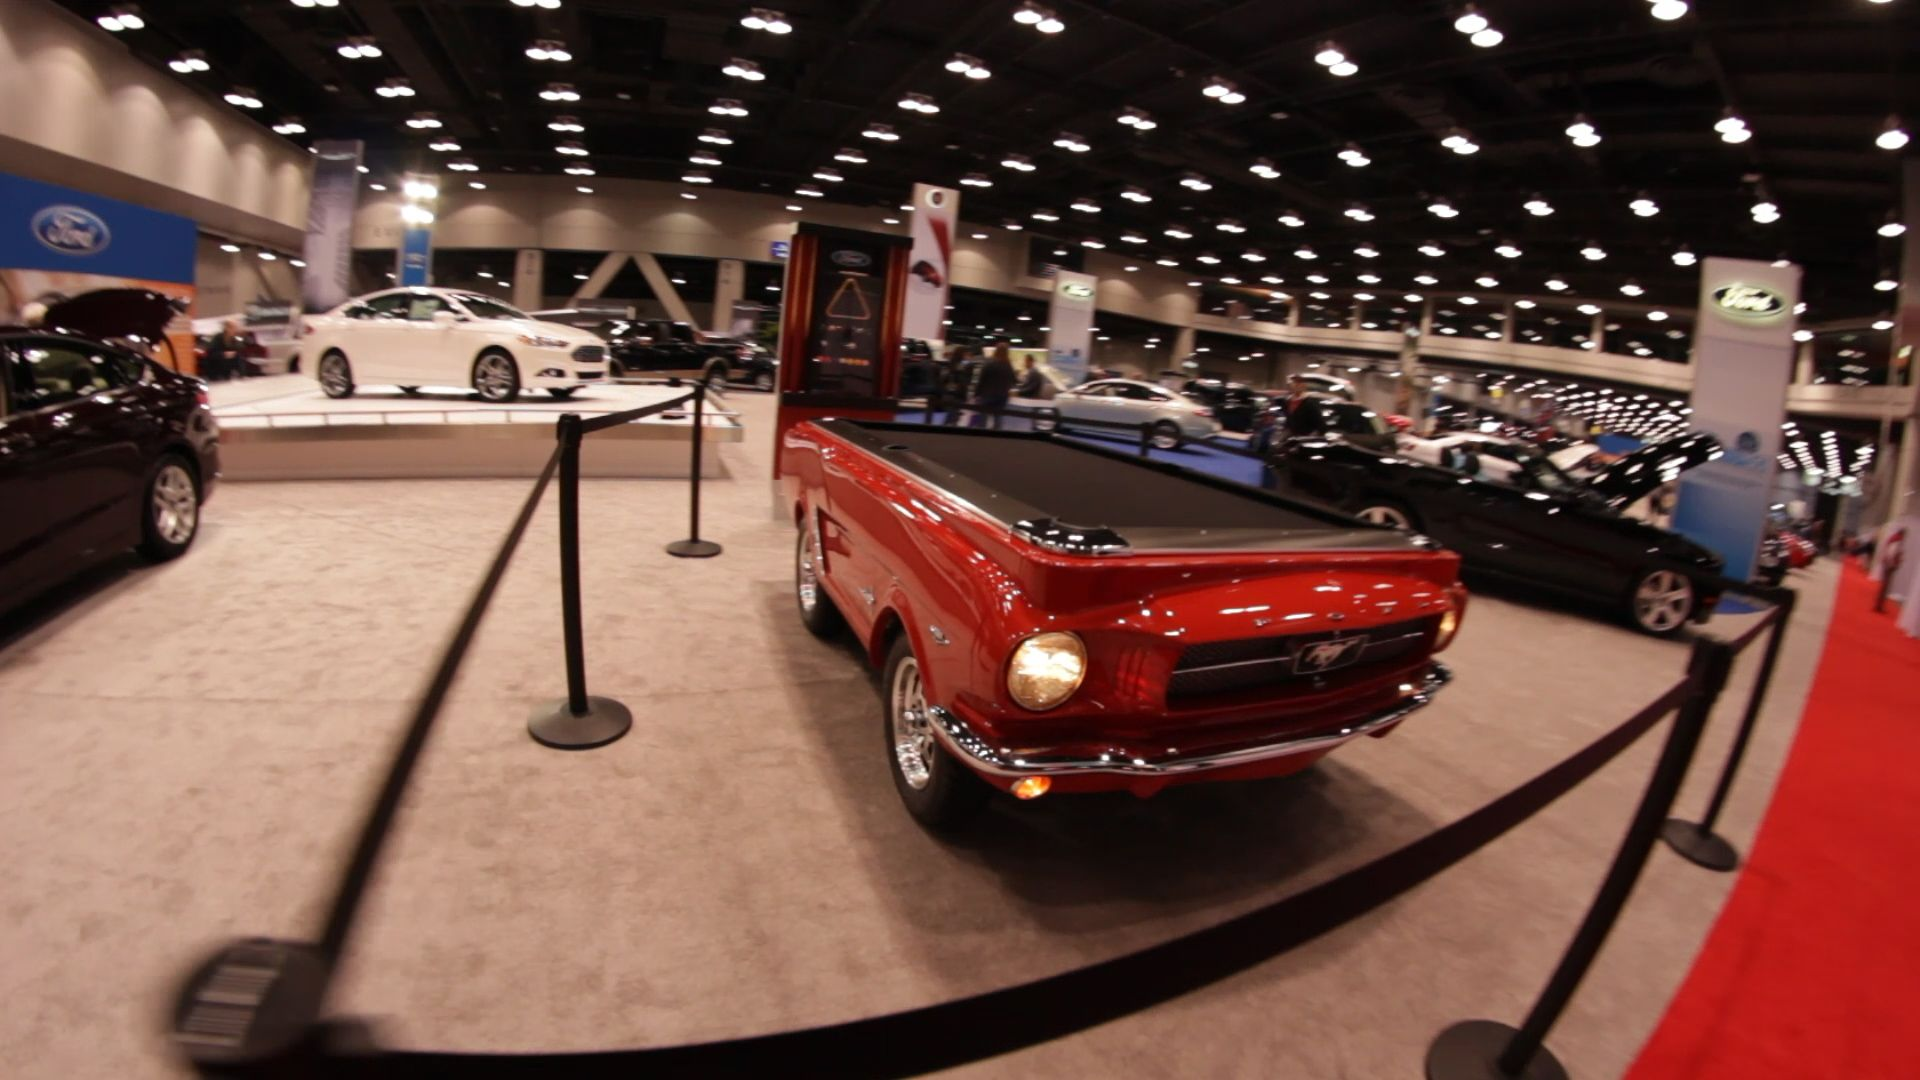 Check Out This Mustang Pool Table Great Conversion Cincinnati Antique Cars Mustang